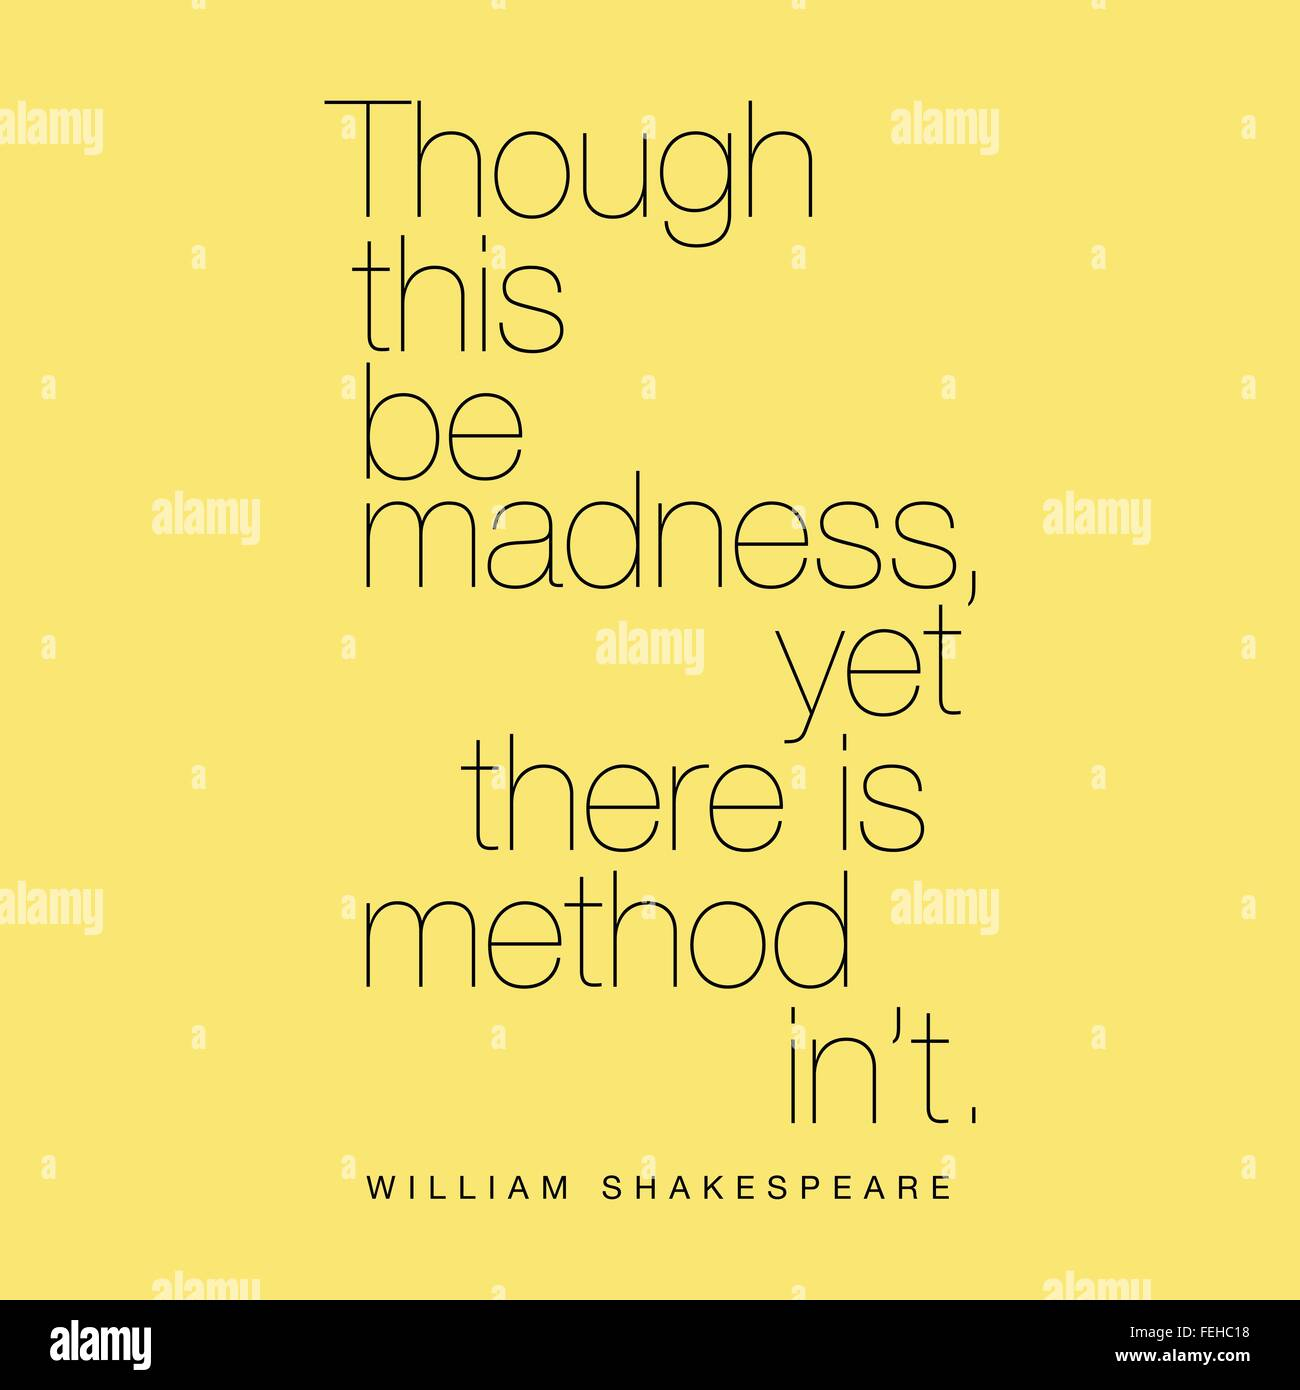 'Though this be madness, yet there is method in't.' William Shakespeare - Stock Vector